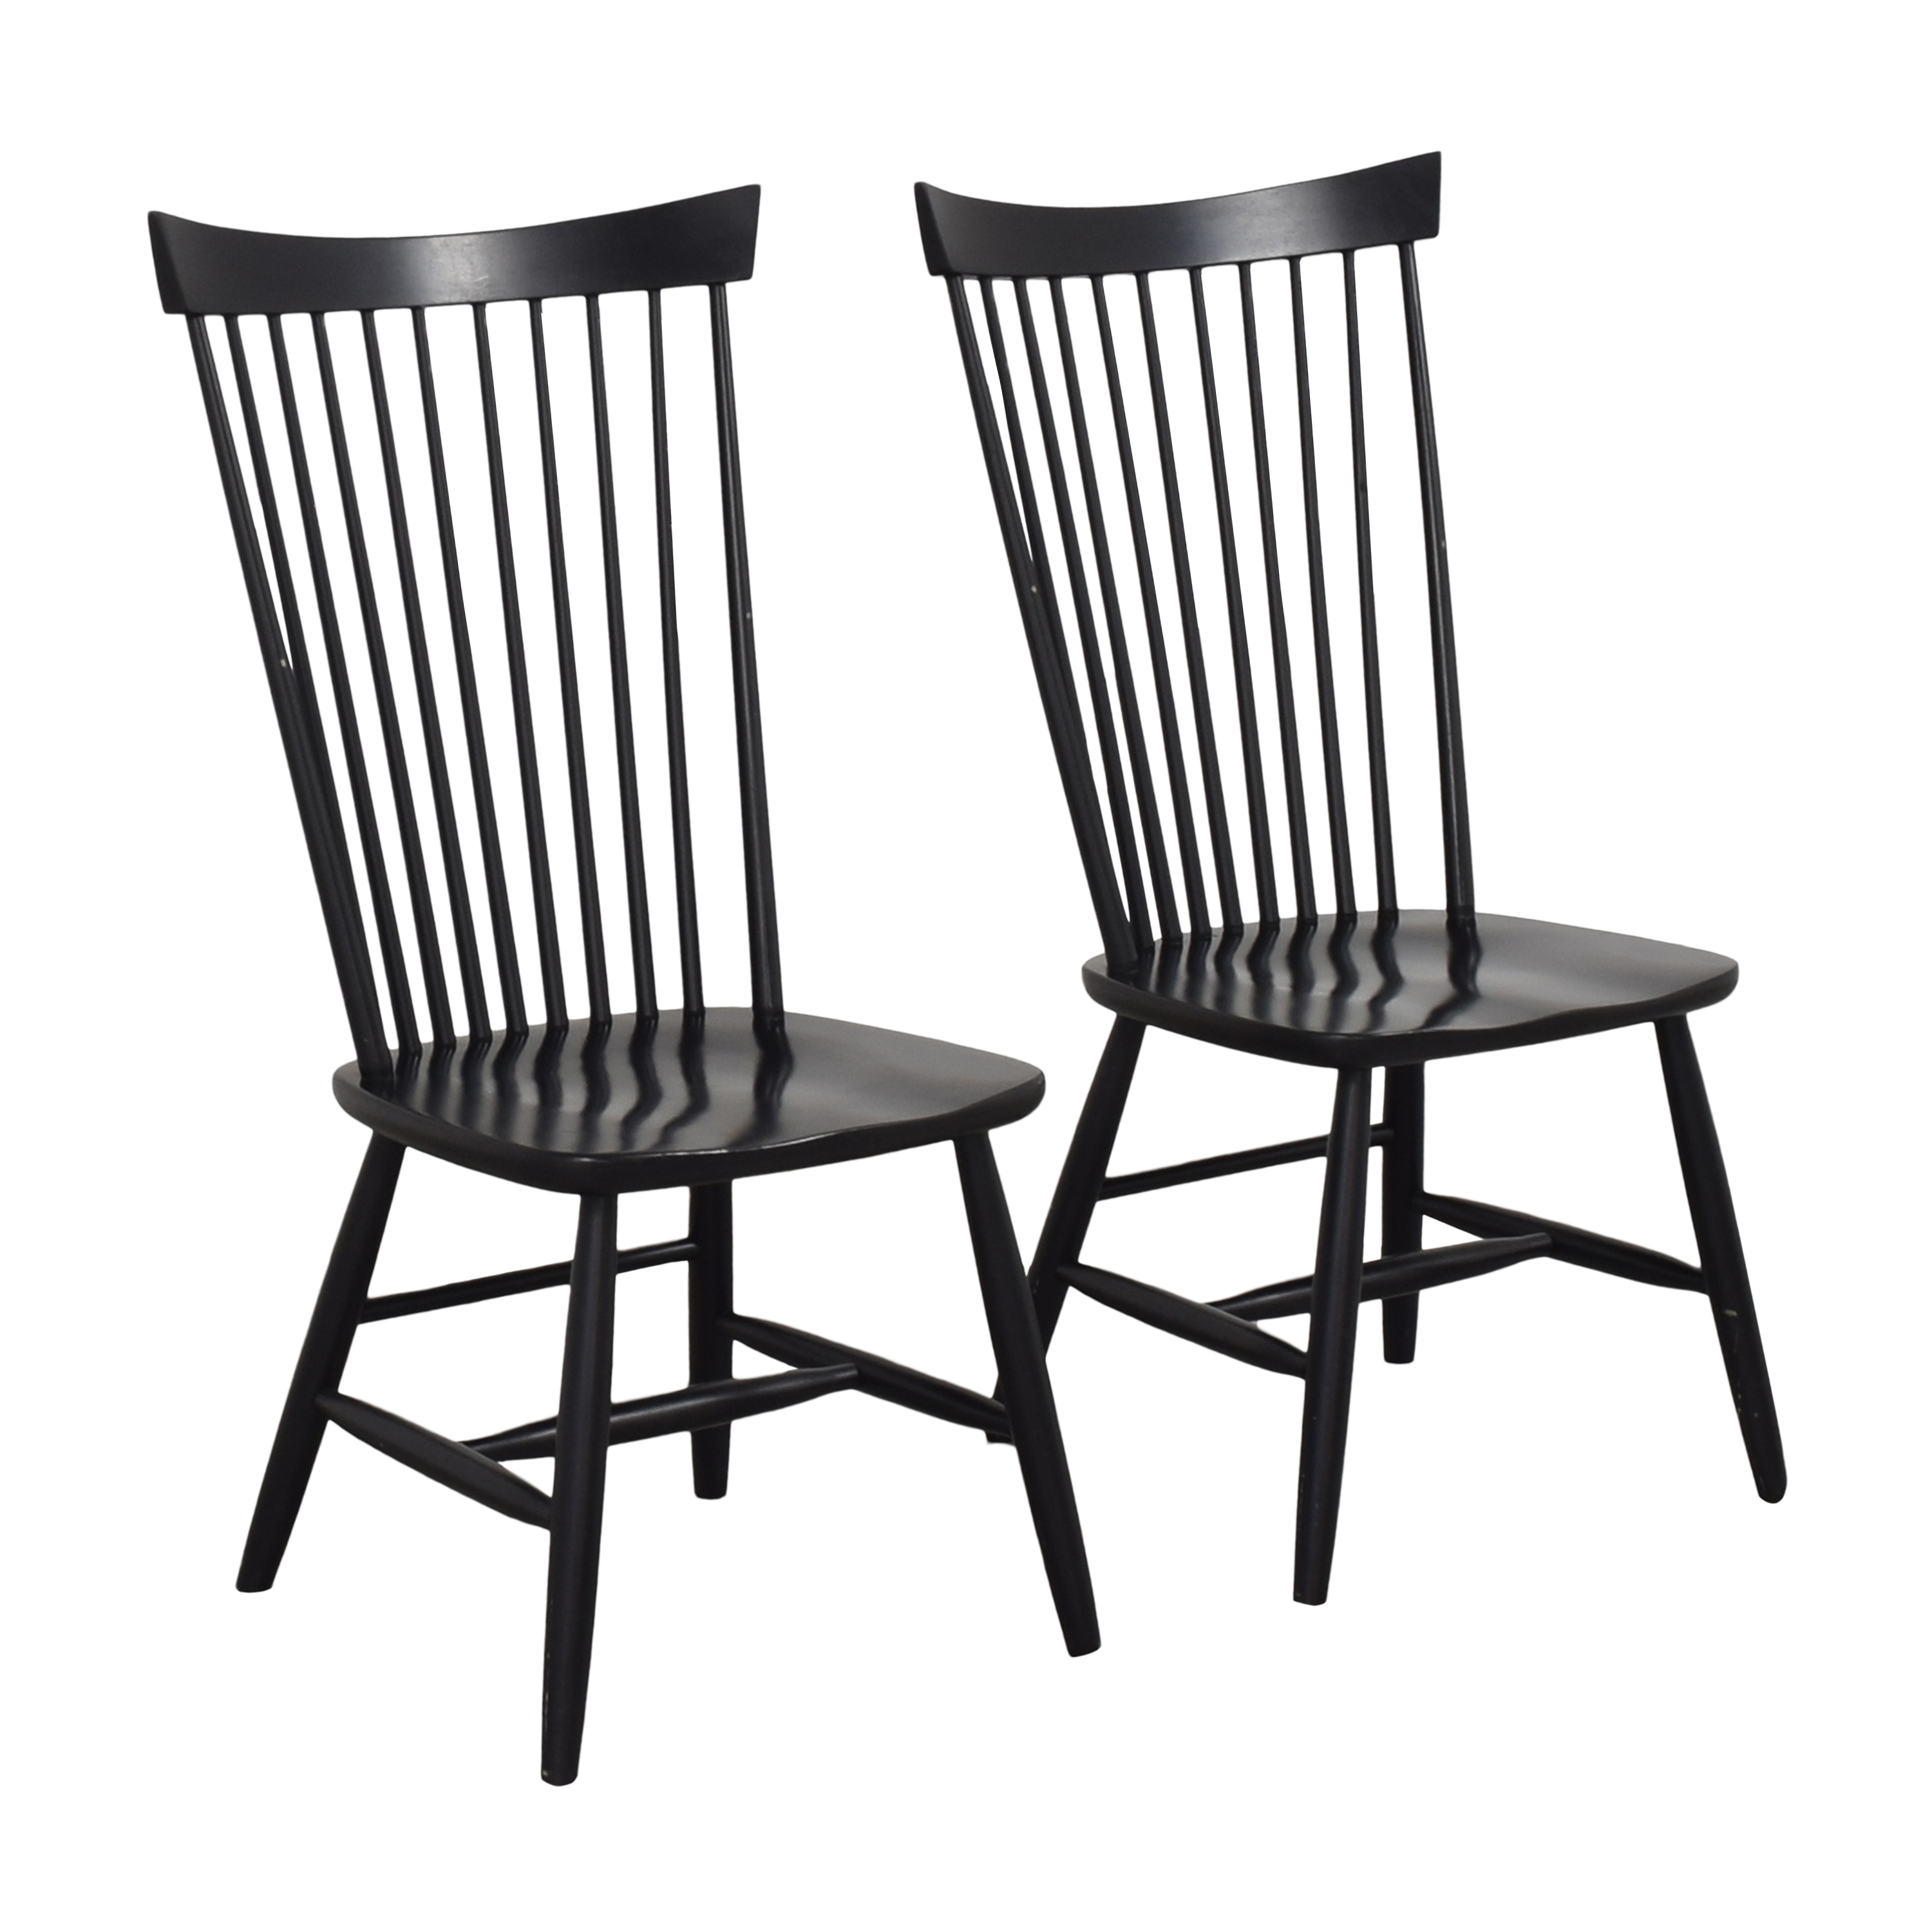 Crate & Barrel Crate & Barrel Marlow II Dining Chairs ct